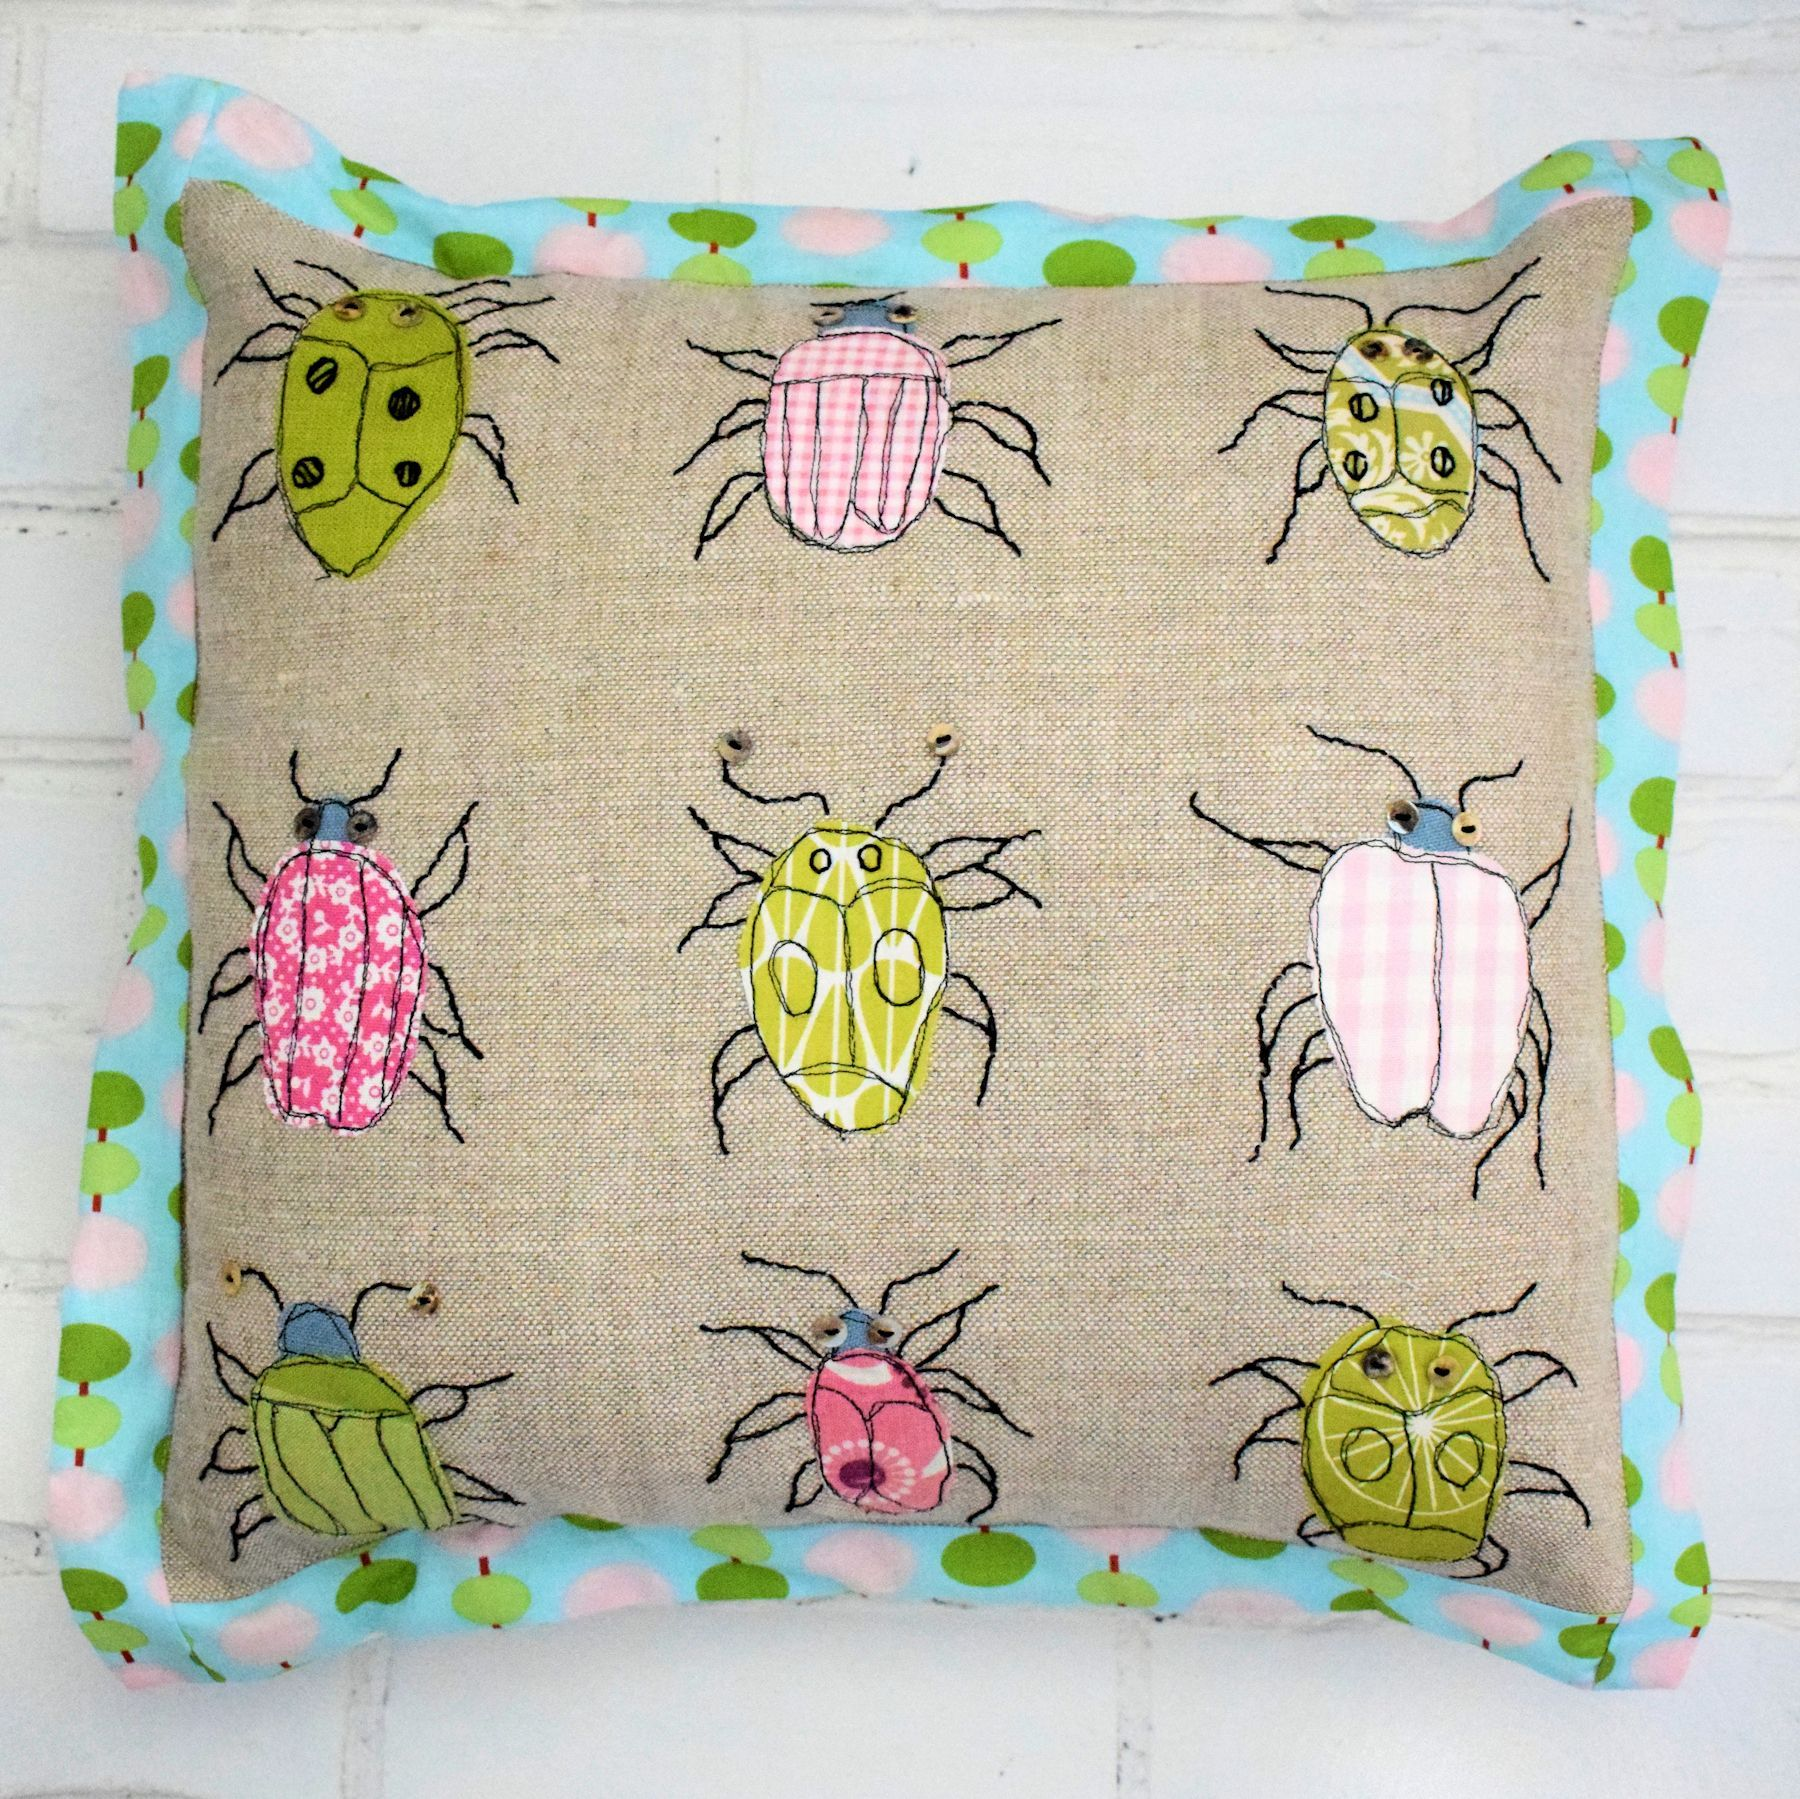 Adorable Bugs Cushion - free throw pillow sewing pattern!